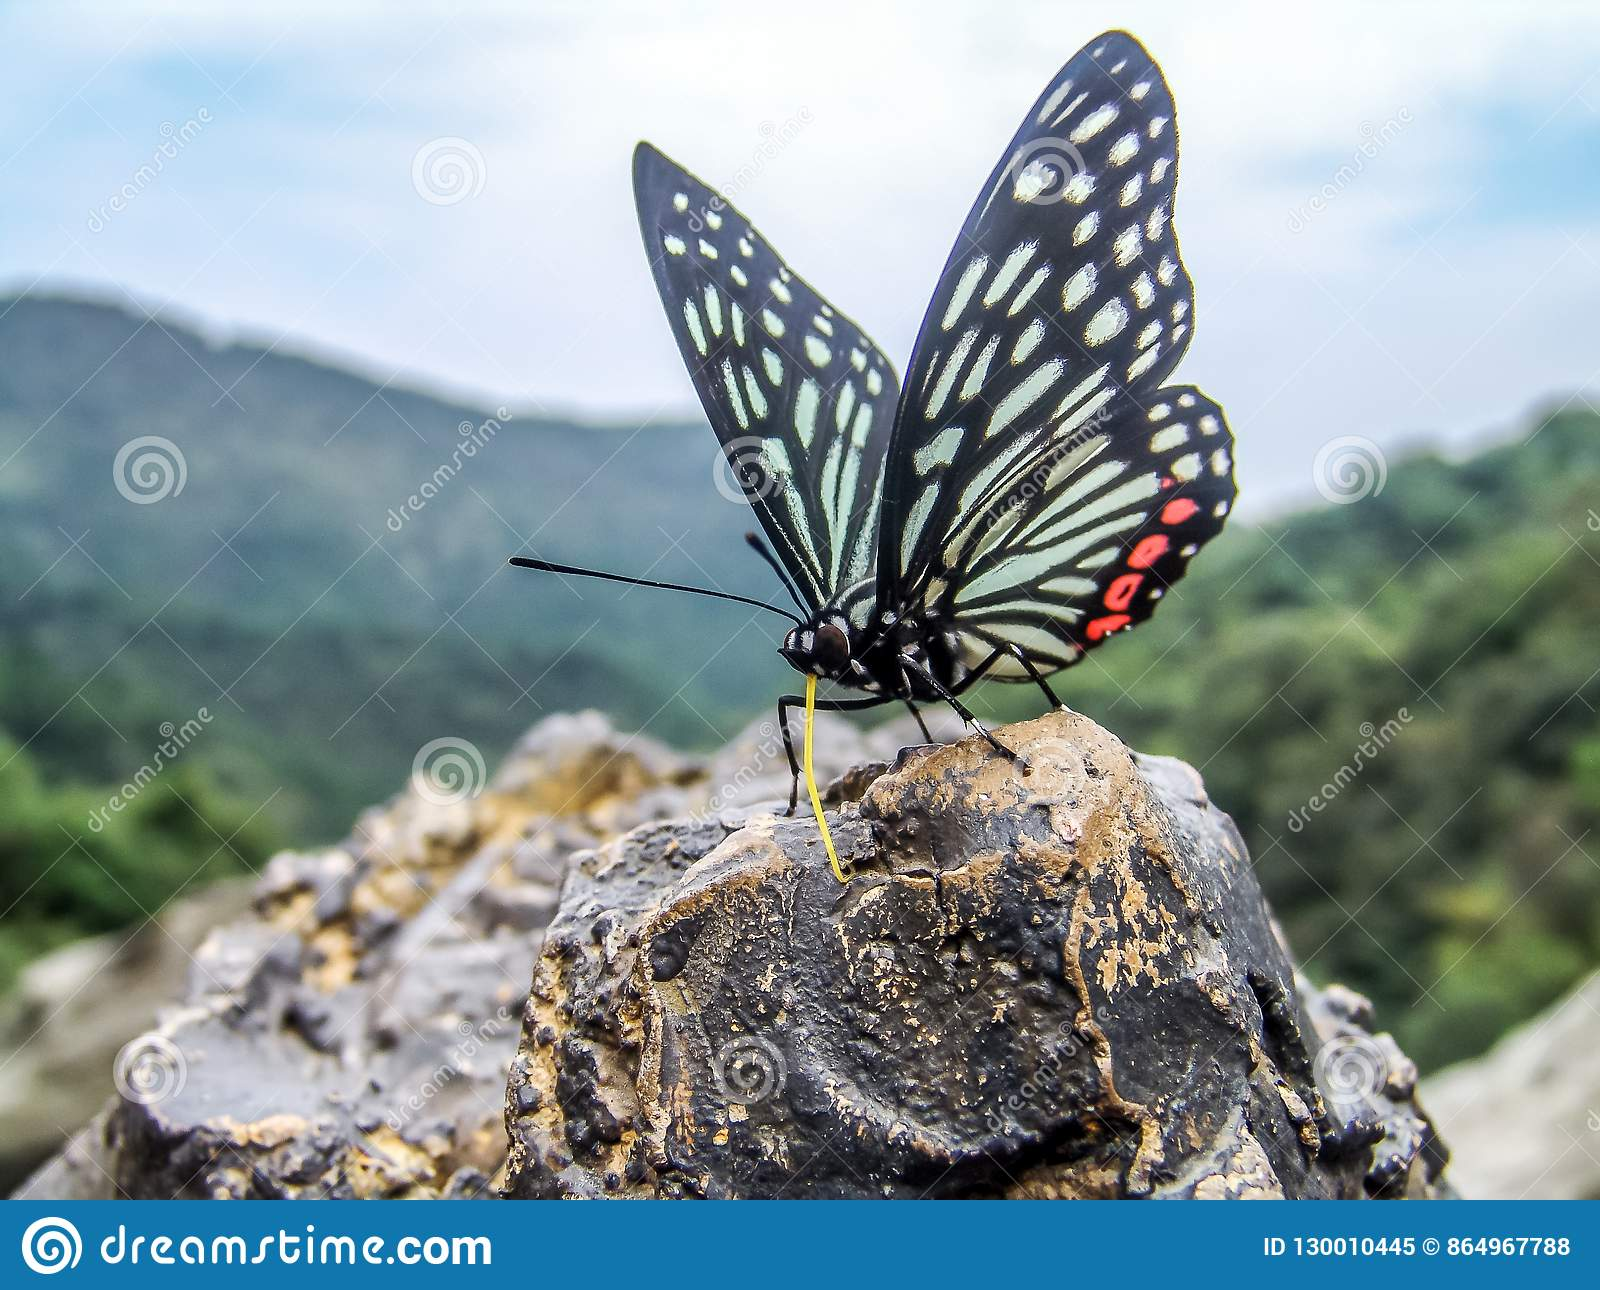 A butterfly resting on a rock